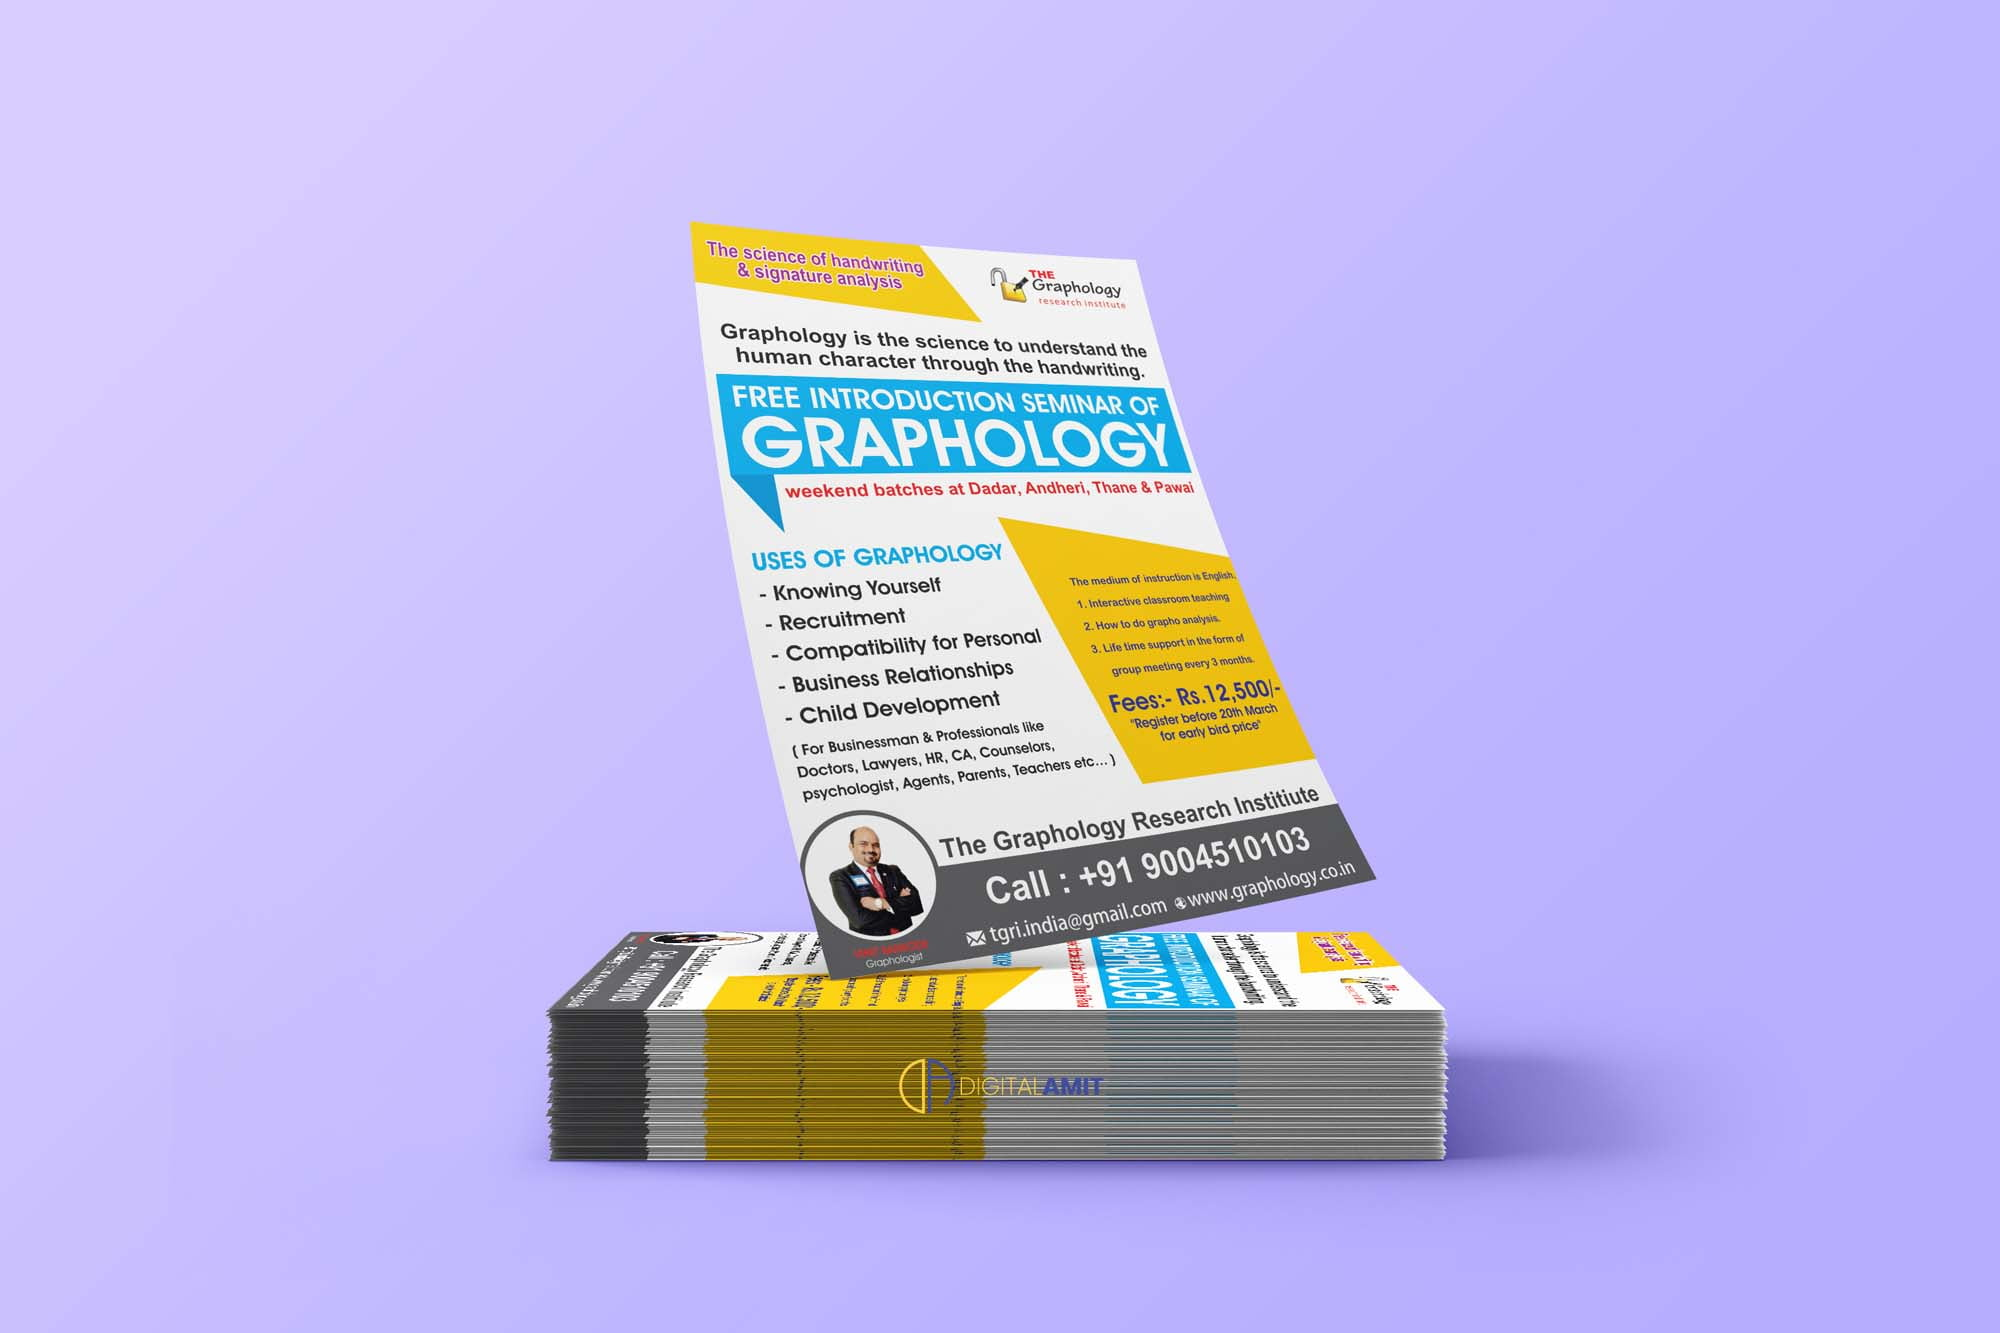 the graphology research institute